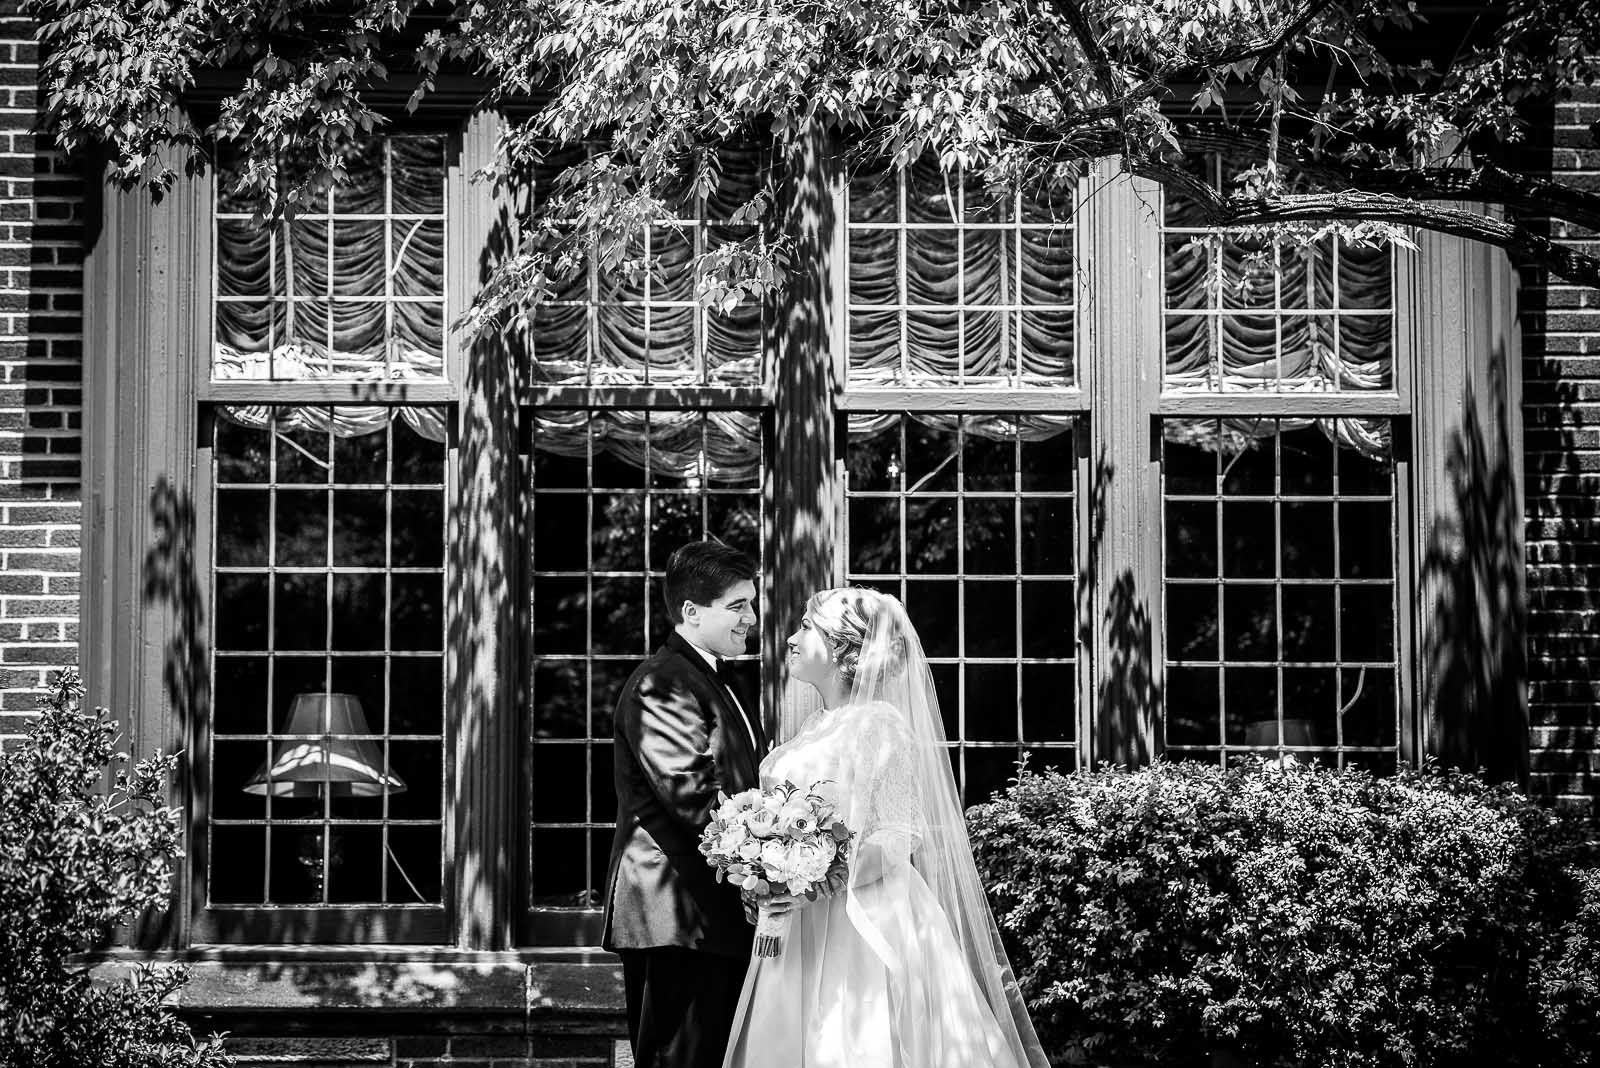 eric_and_christy_photographers_blog_wedding_emilypeter-16